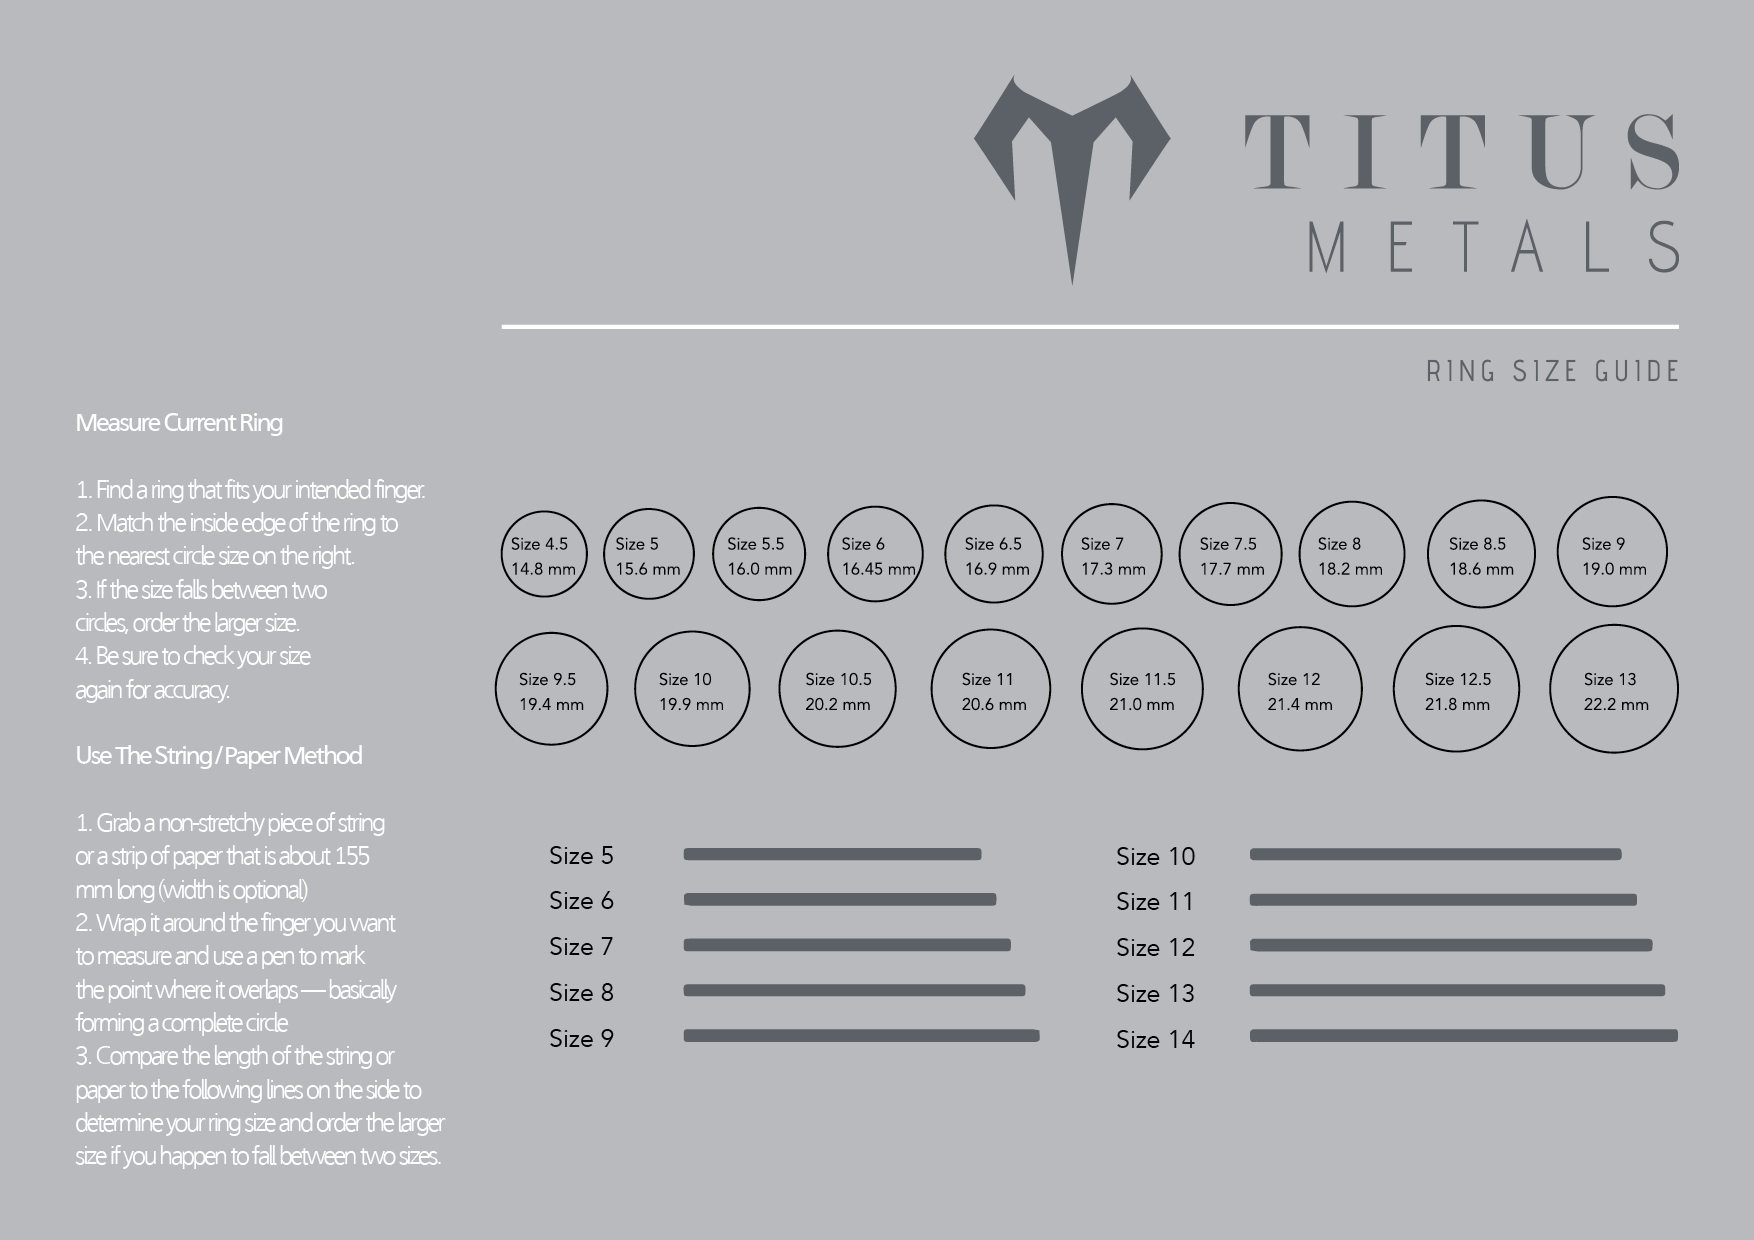 Titus Metals Ring Size Guide Chart